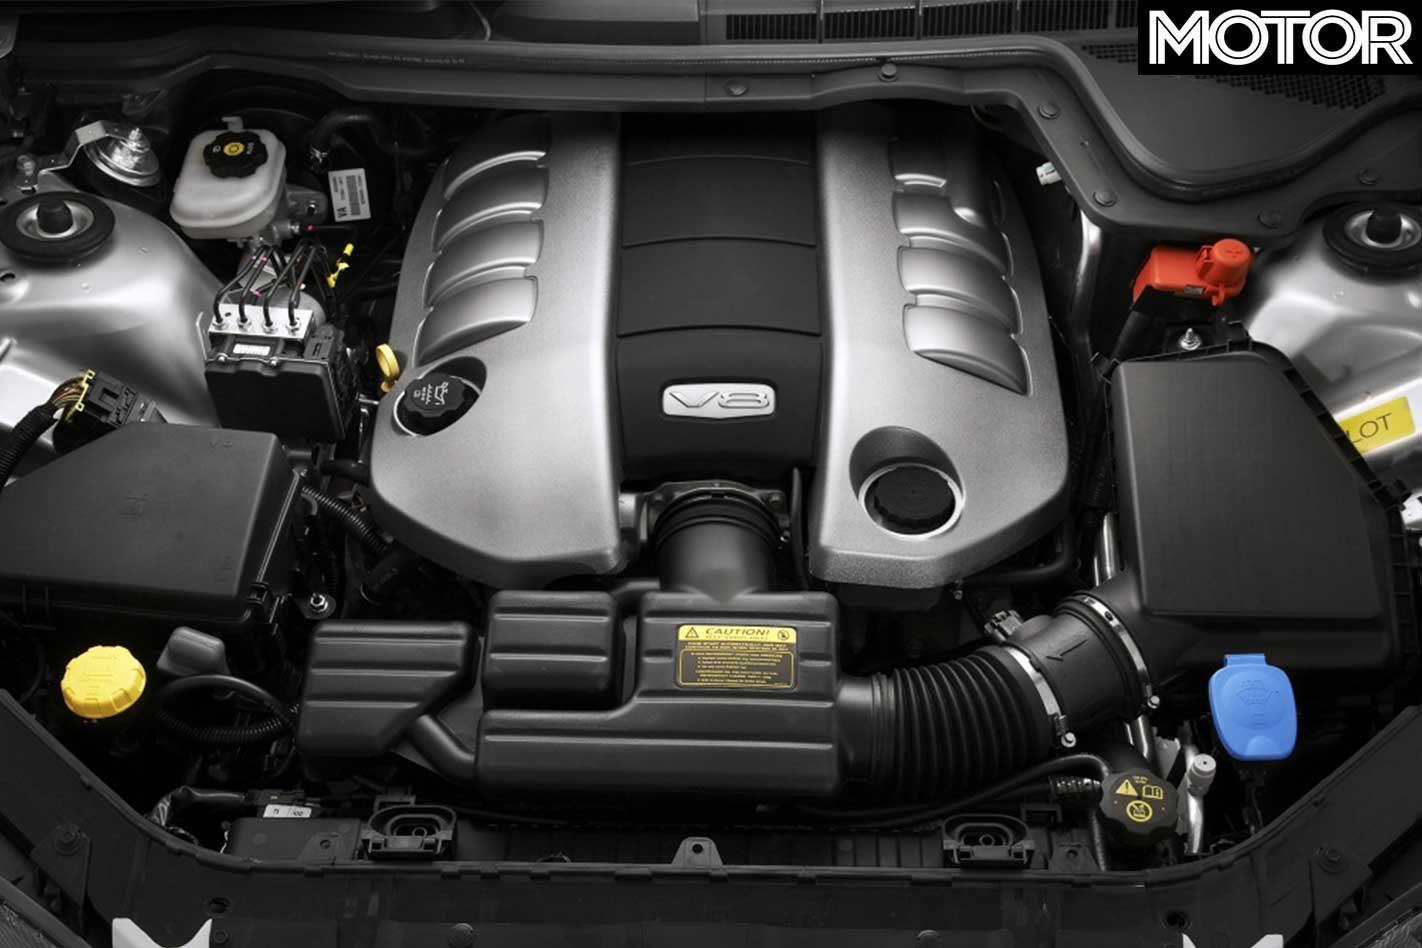 2009 Holden Commodore SS AFM review: classic MOTOR